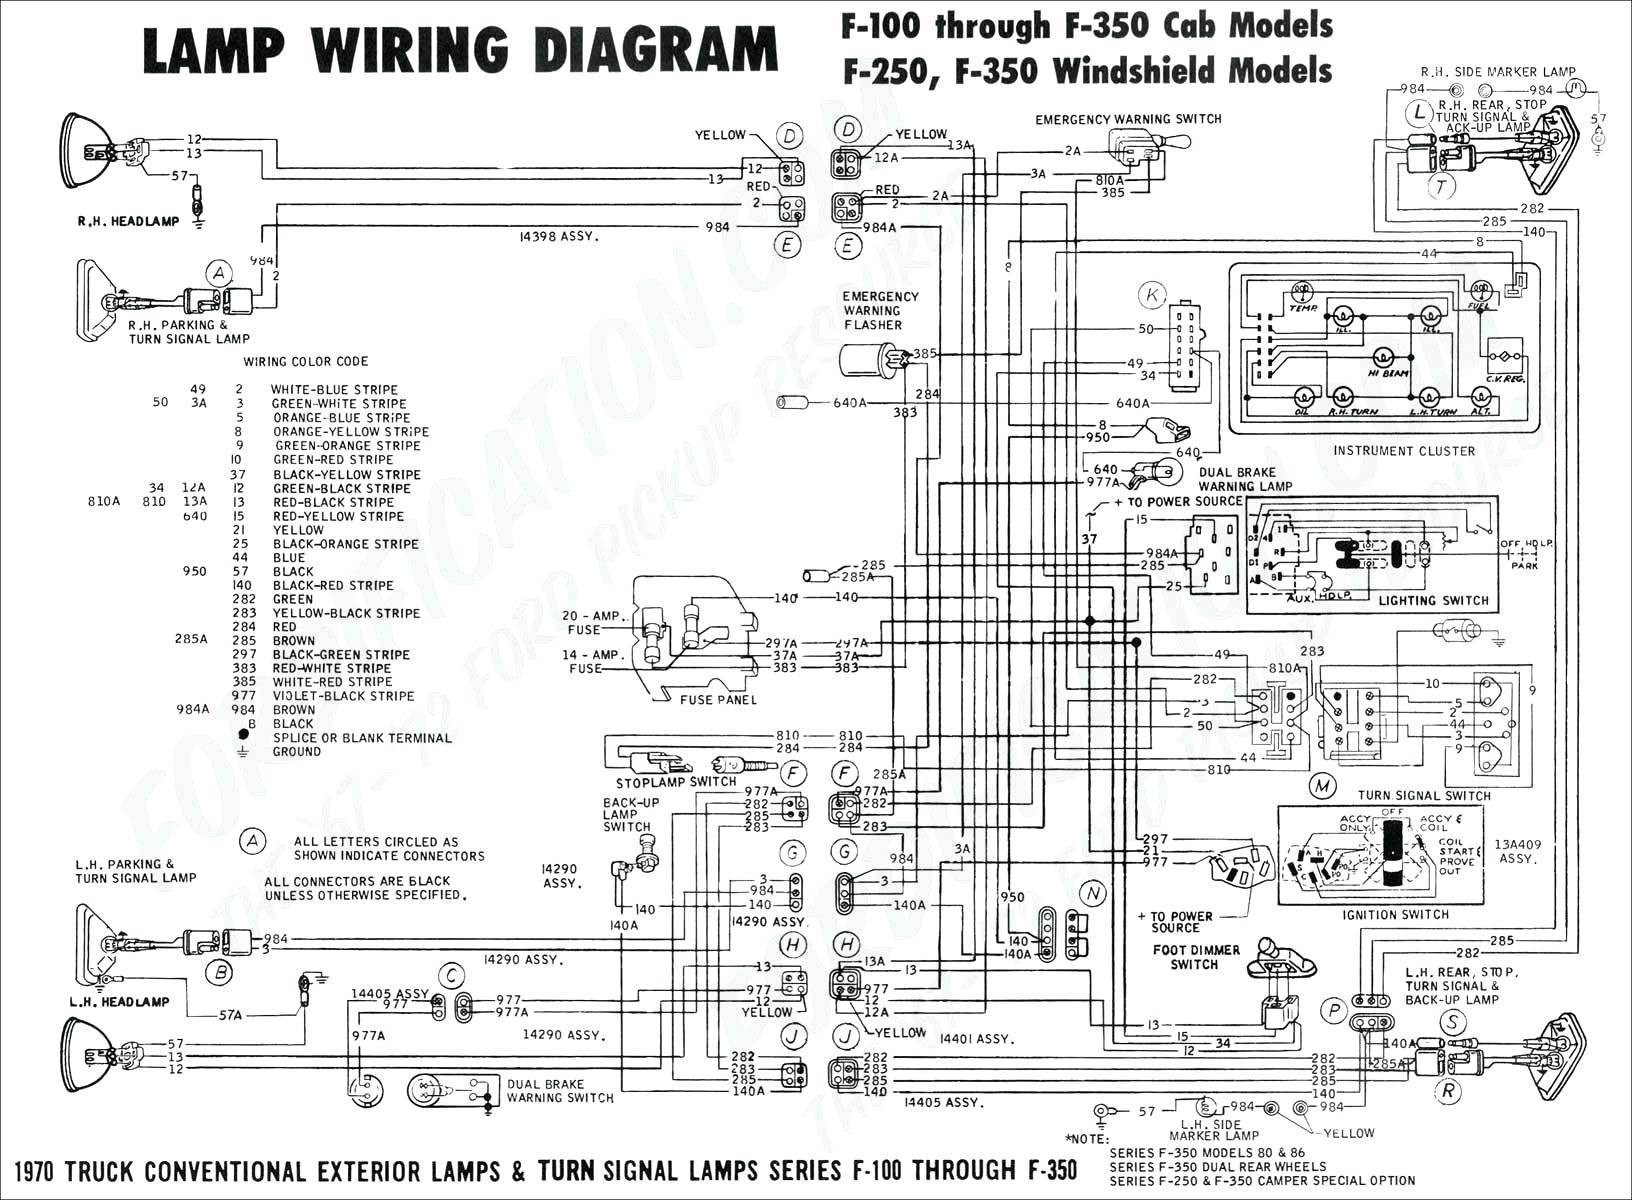 Simple Steam Engine Diagram Wiring Diagram Symbols Connector New American Wiring Diagram Symbols Of Simple Steam Engine Diagram